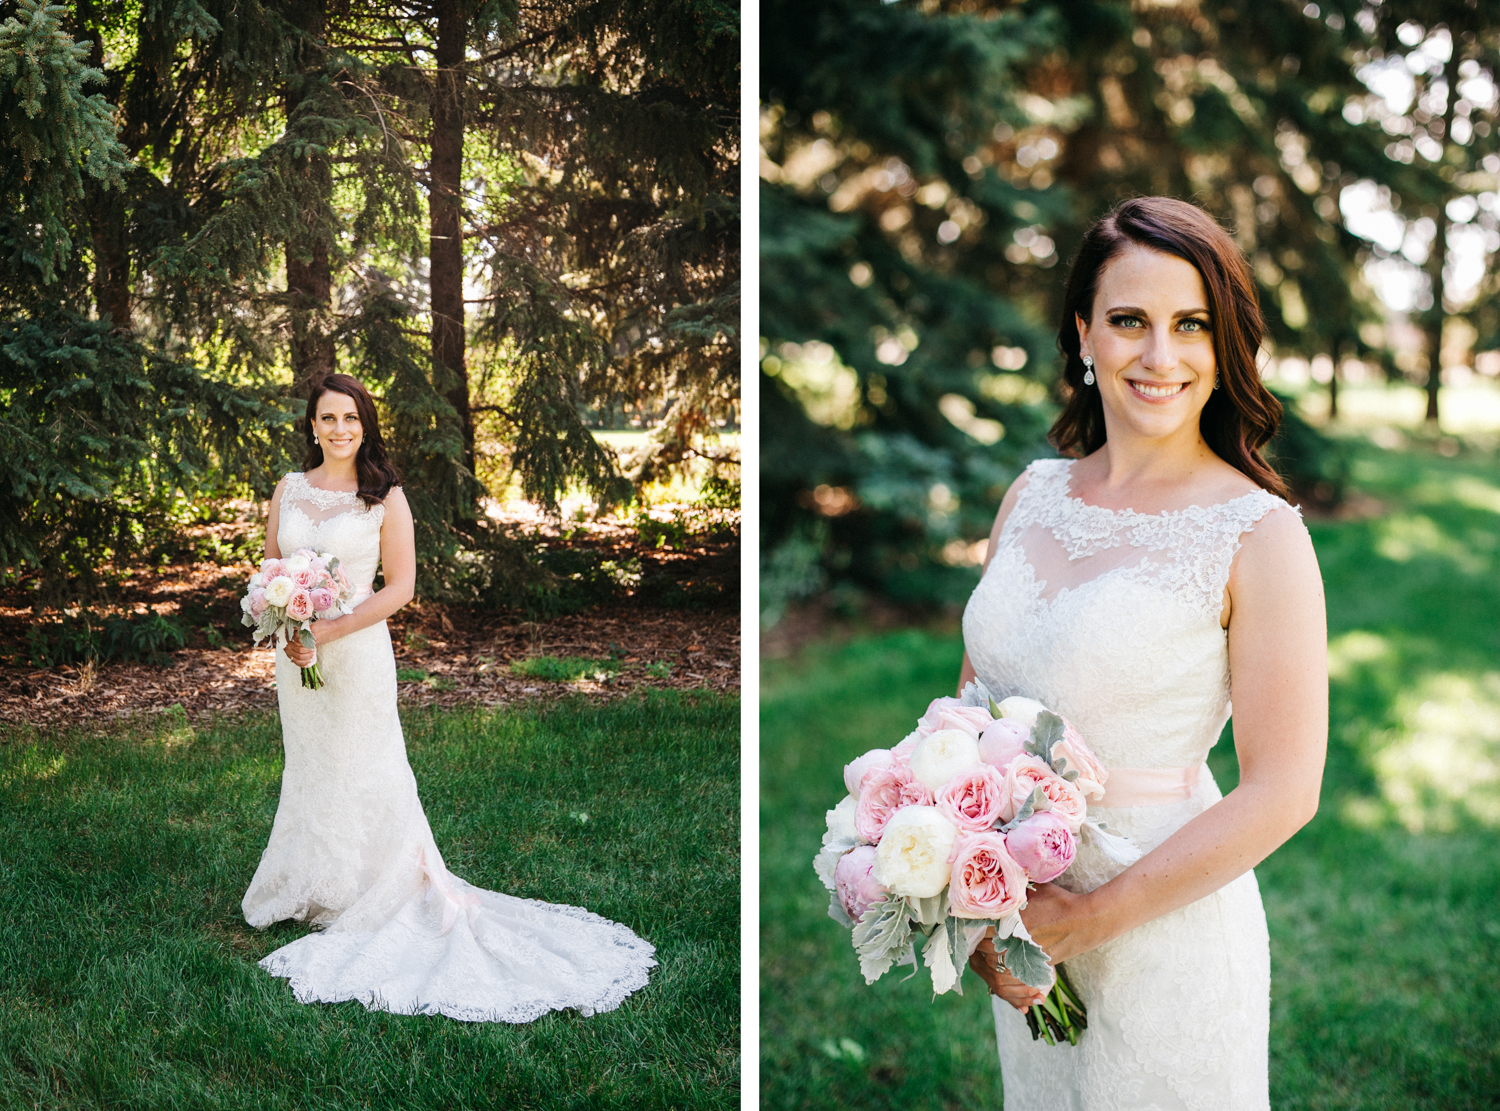 lethbridge-wedding-photography-love-and-be-loved-photographers-ashlin-anne-backyard-wedding-image-picture-photo-365.jpg